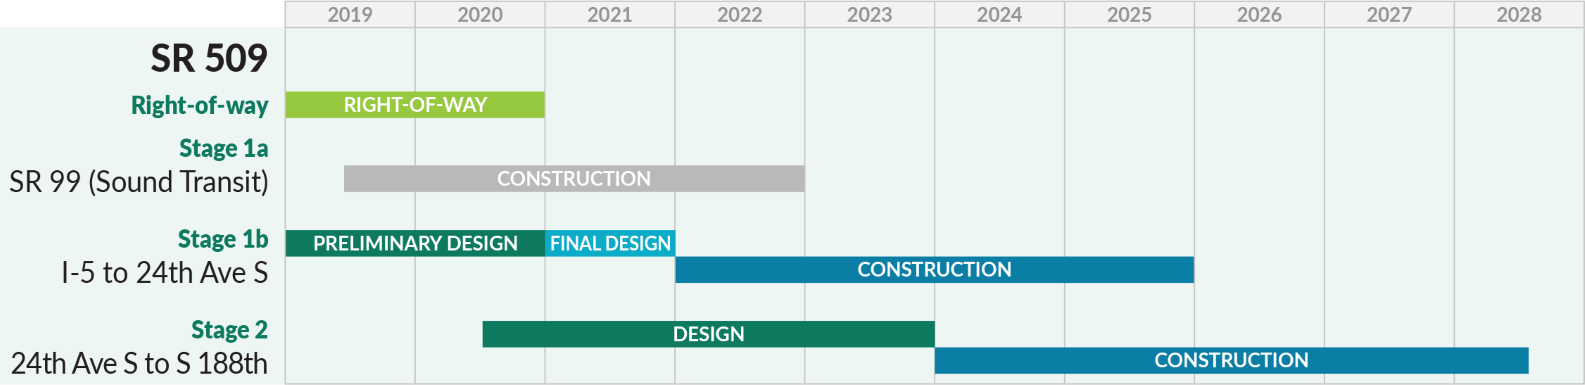 A timeline of the SR 509 project schedule